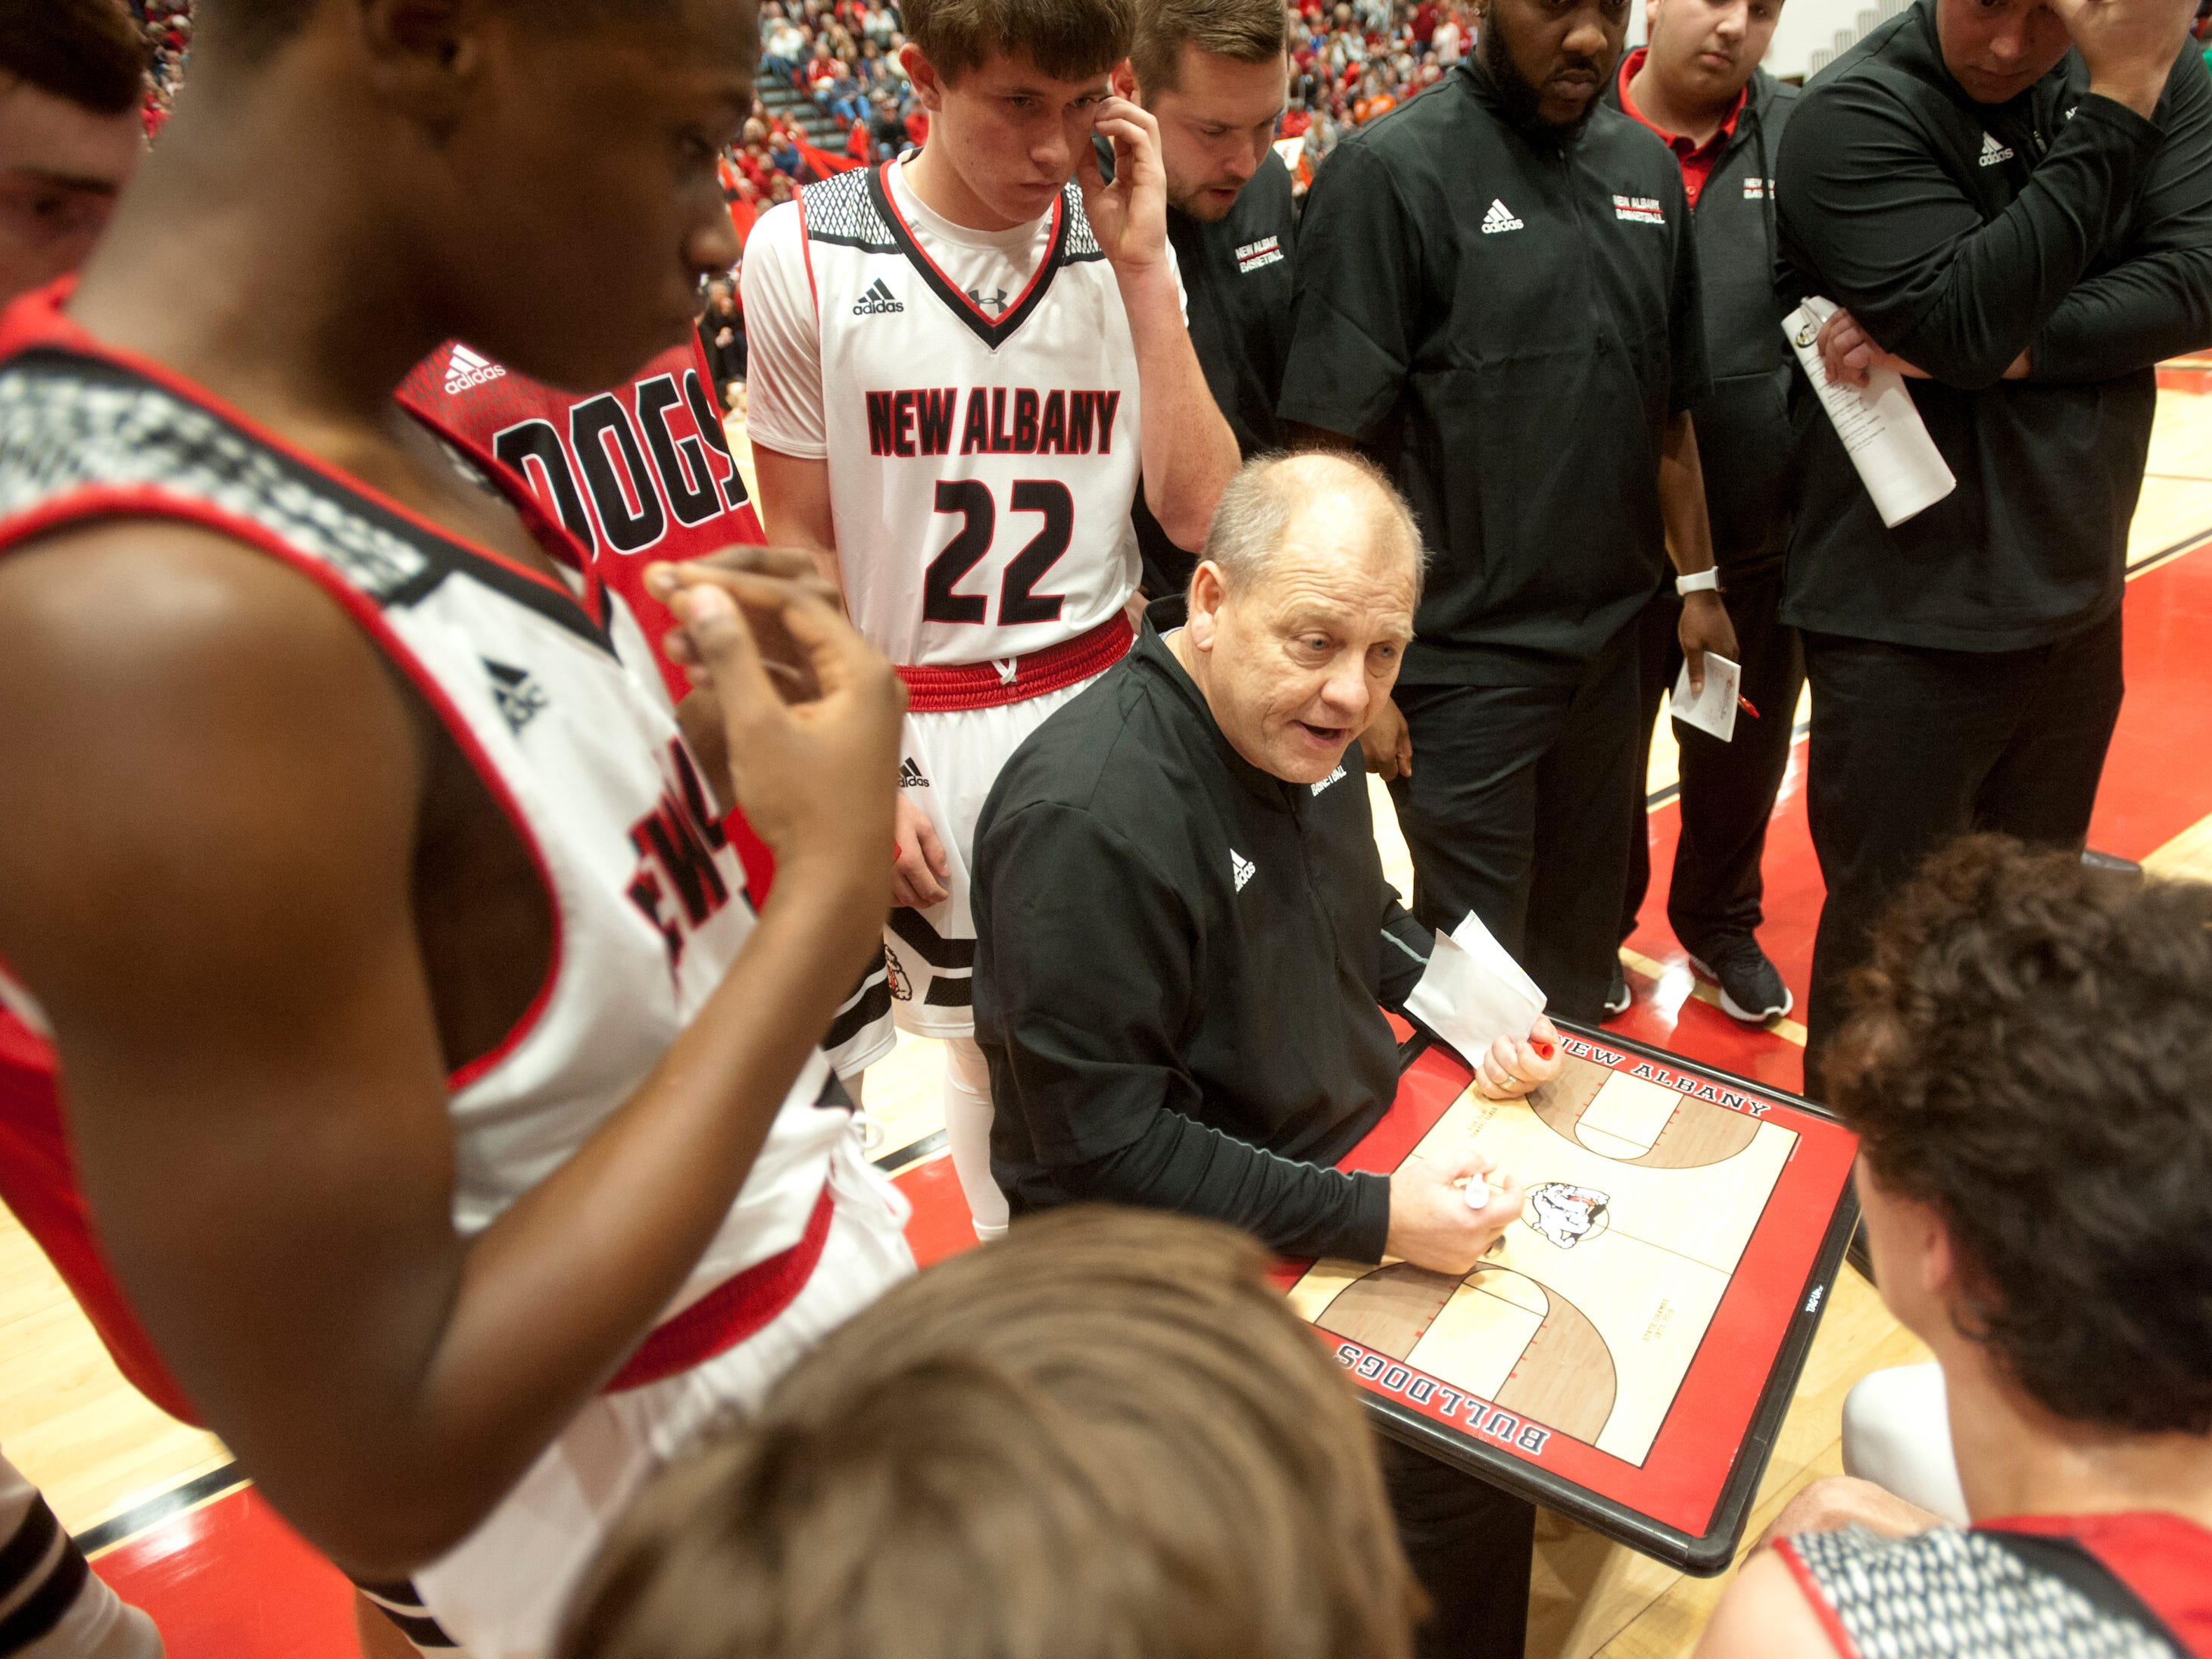 New Albany head basketball coach Jim Shannon sketches a play during a time-out.07 December 2018